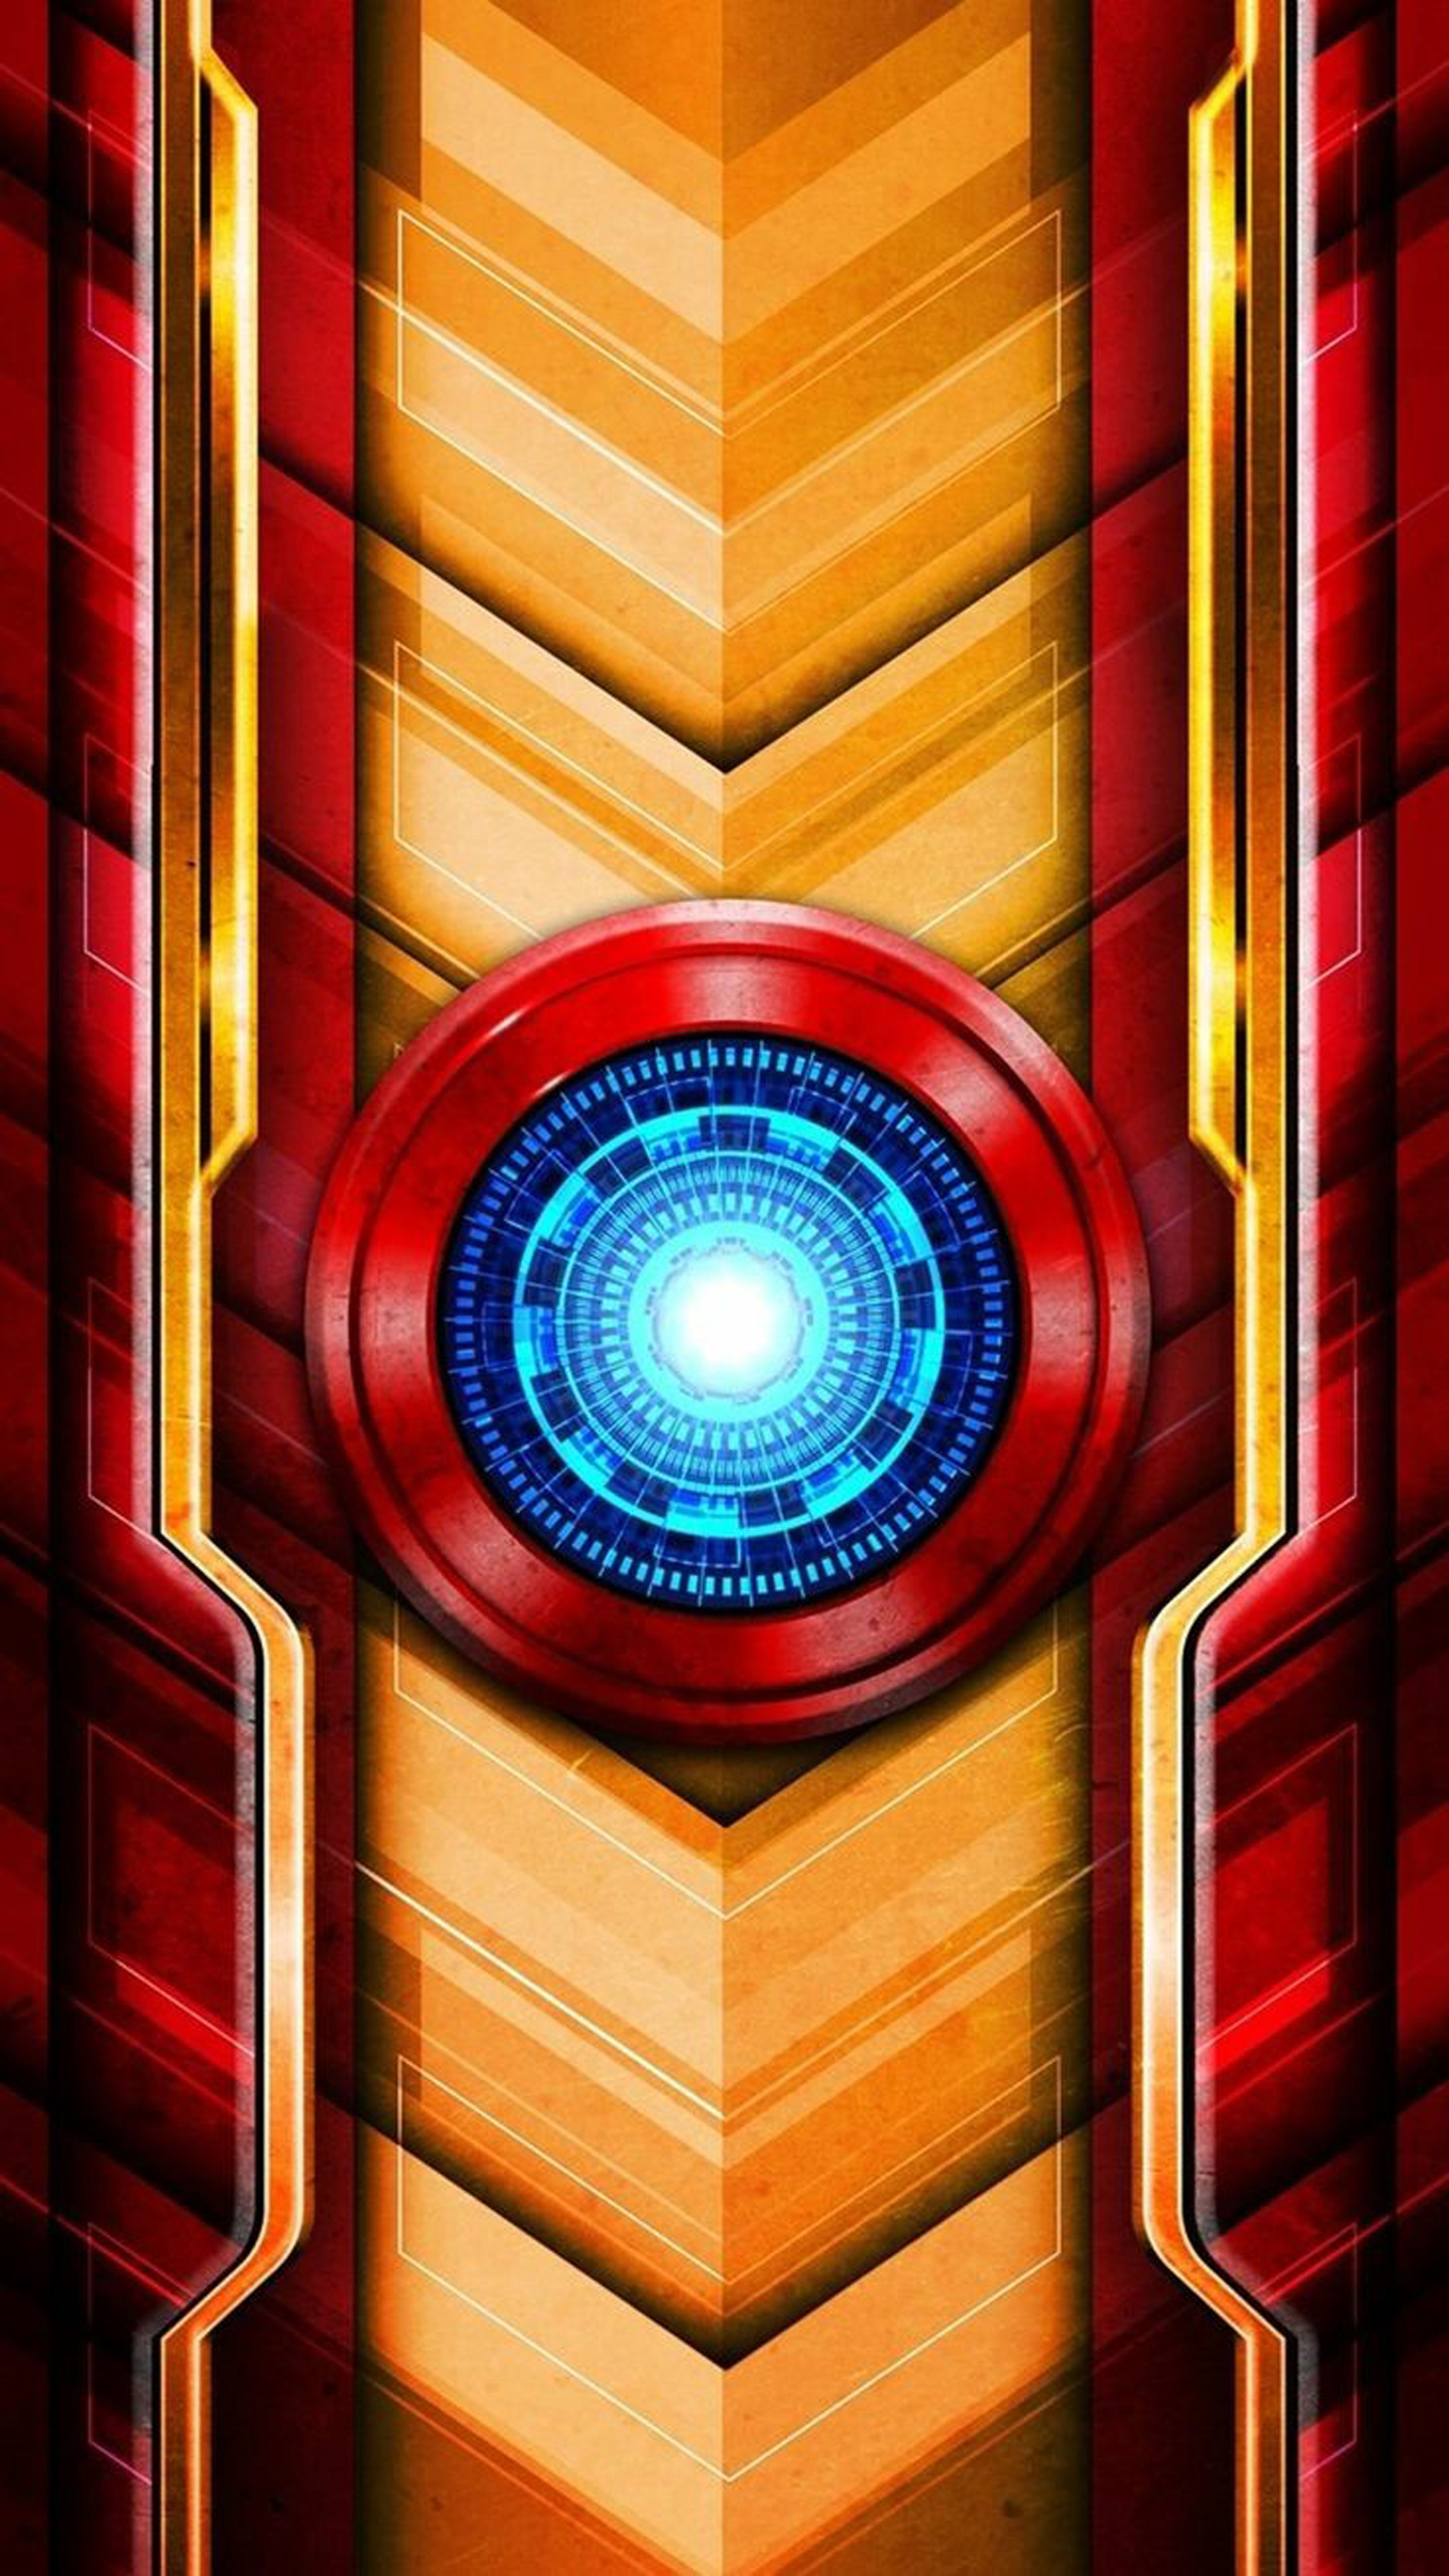 Abstract Design 62 Phone Case And More Iron Man Hd Wallpaper Iron Man Wallpaper Iron Man Art